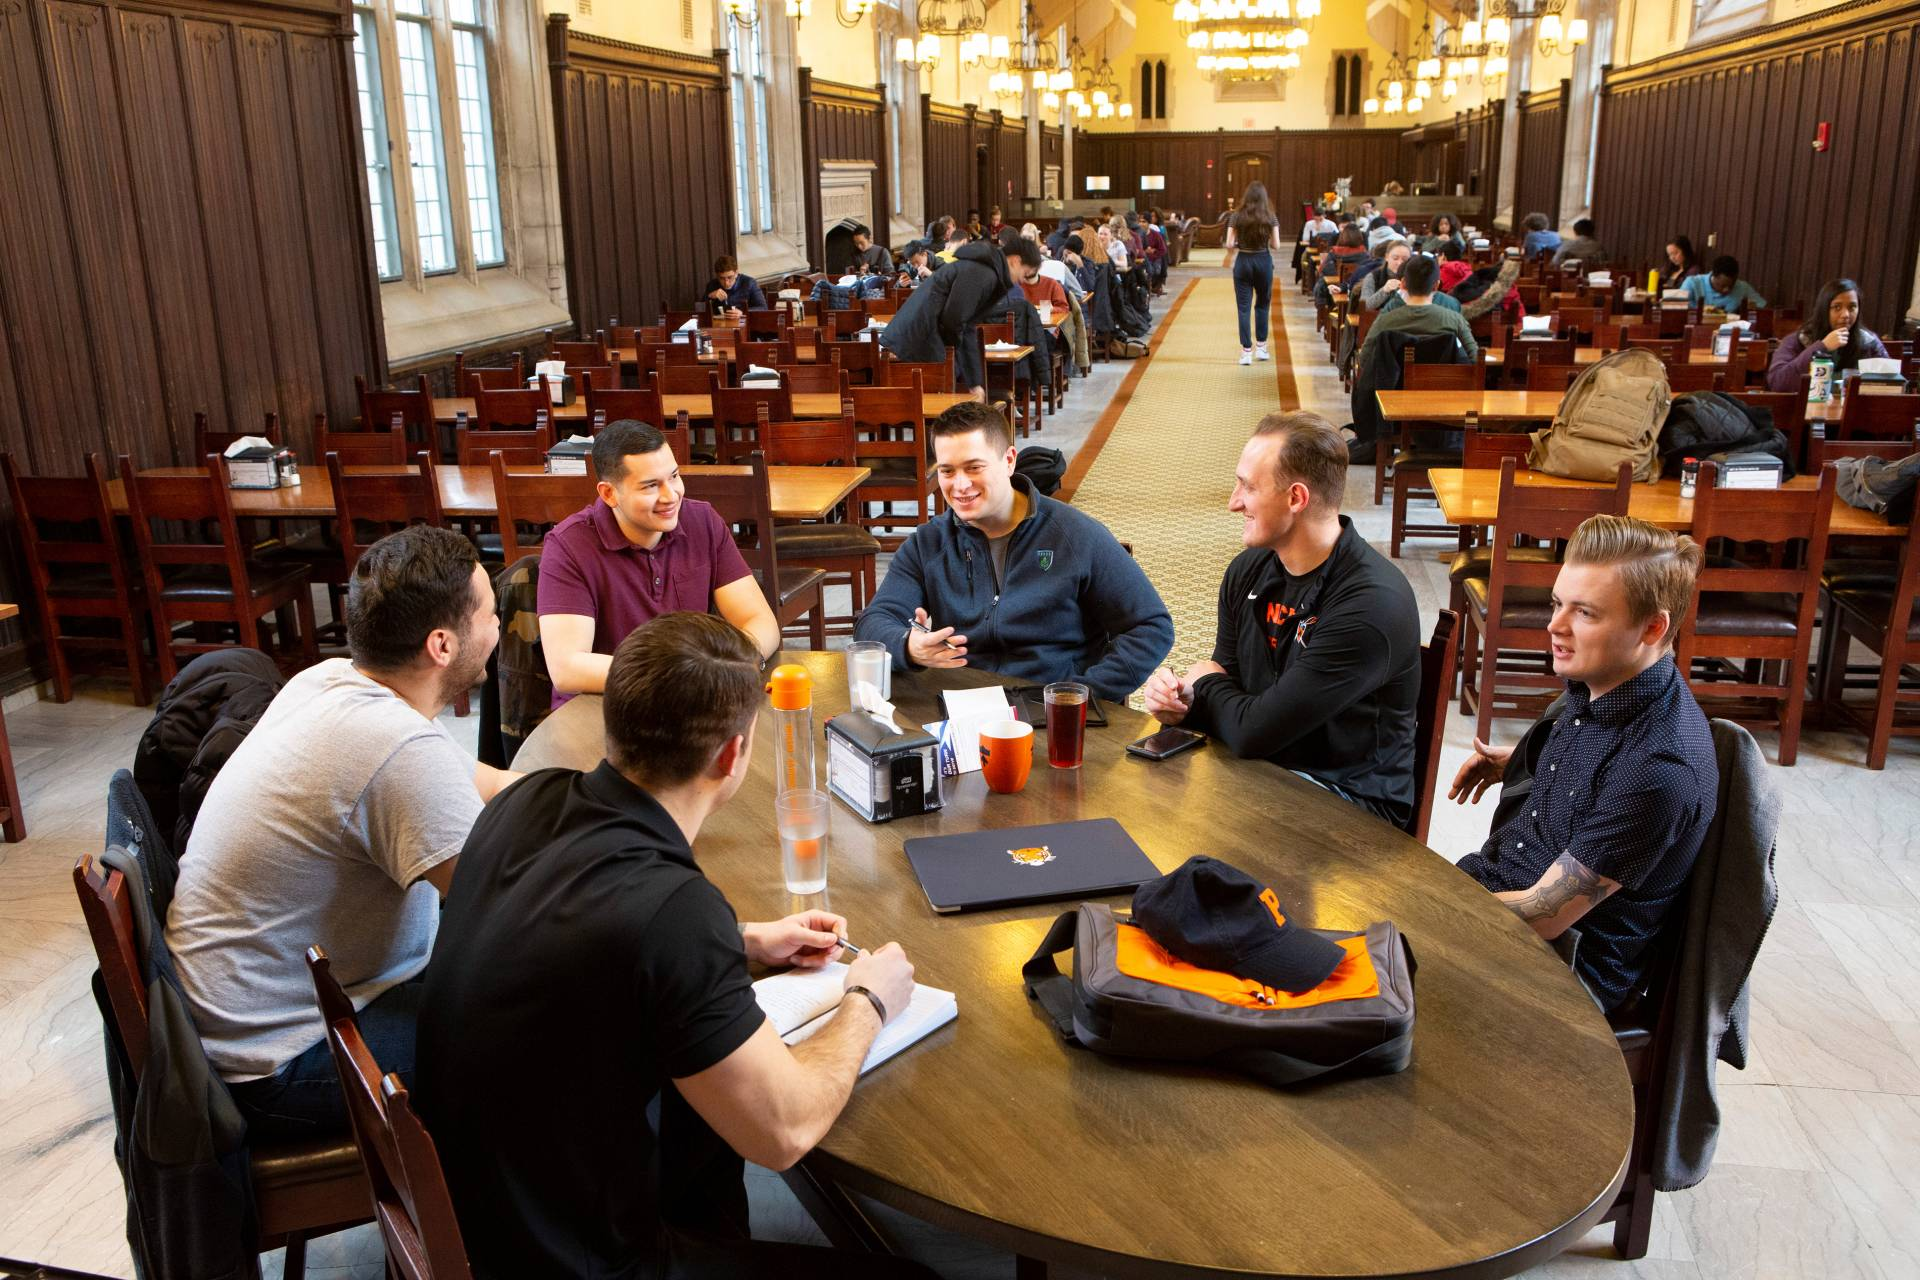 Students sitting around a table in a dining hall